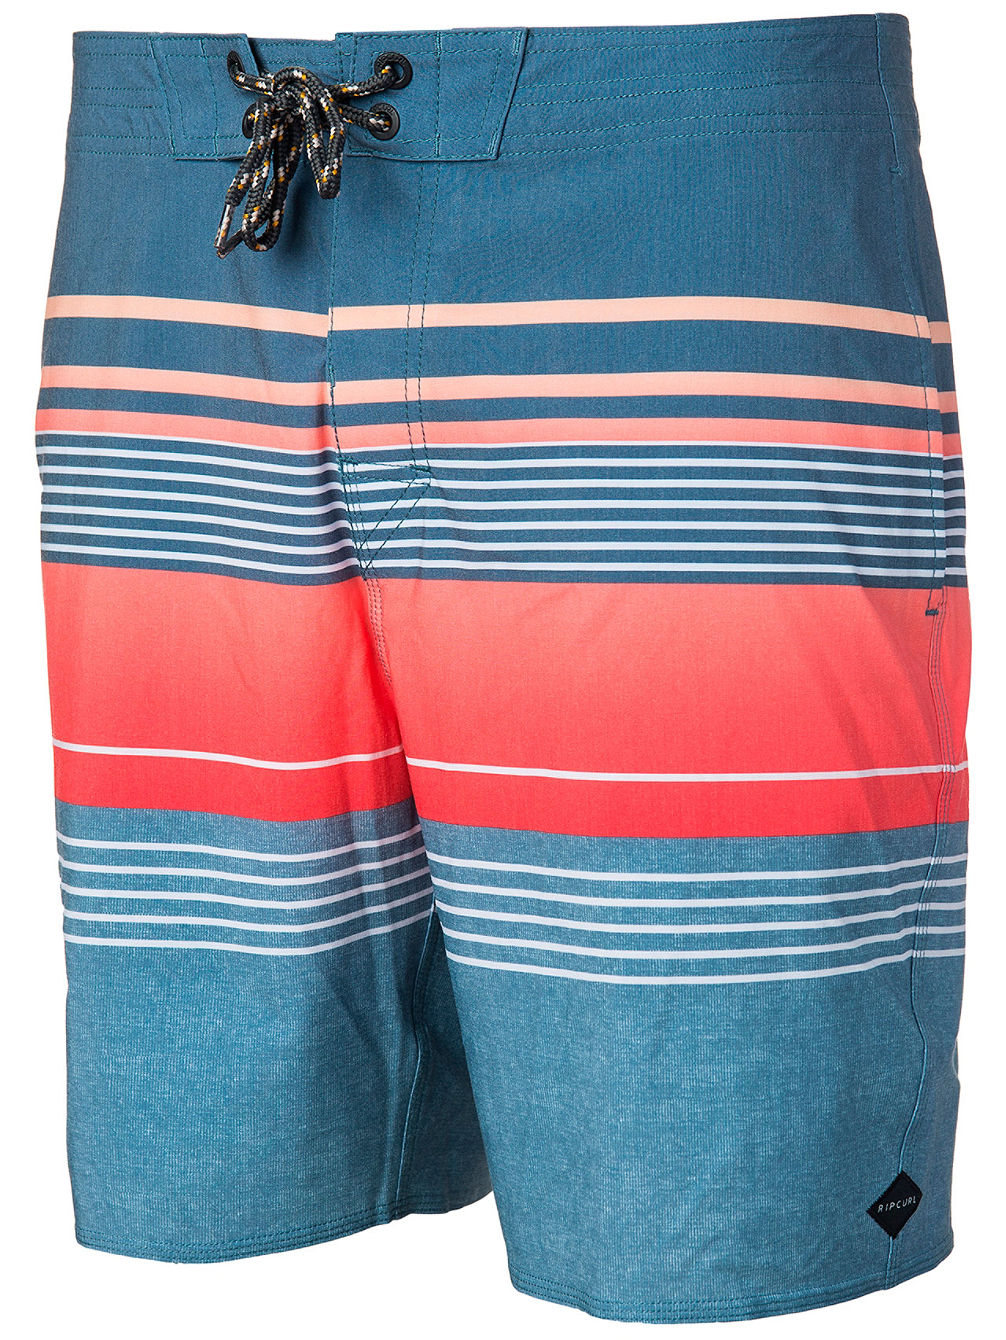 "Layday Rapture 19"" Boardshorts"